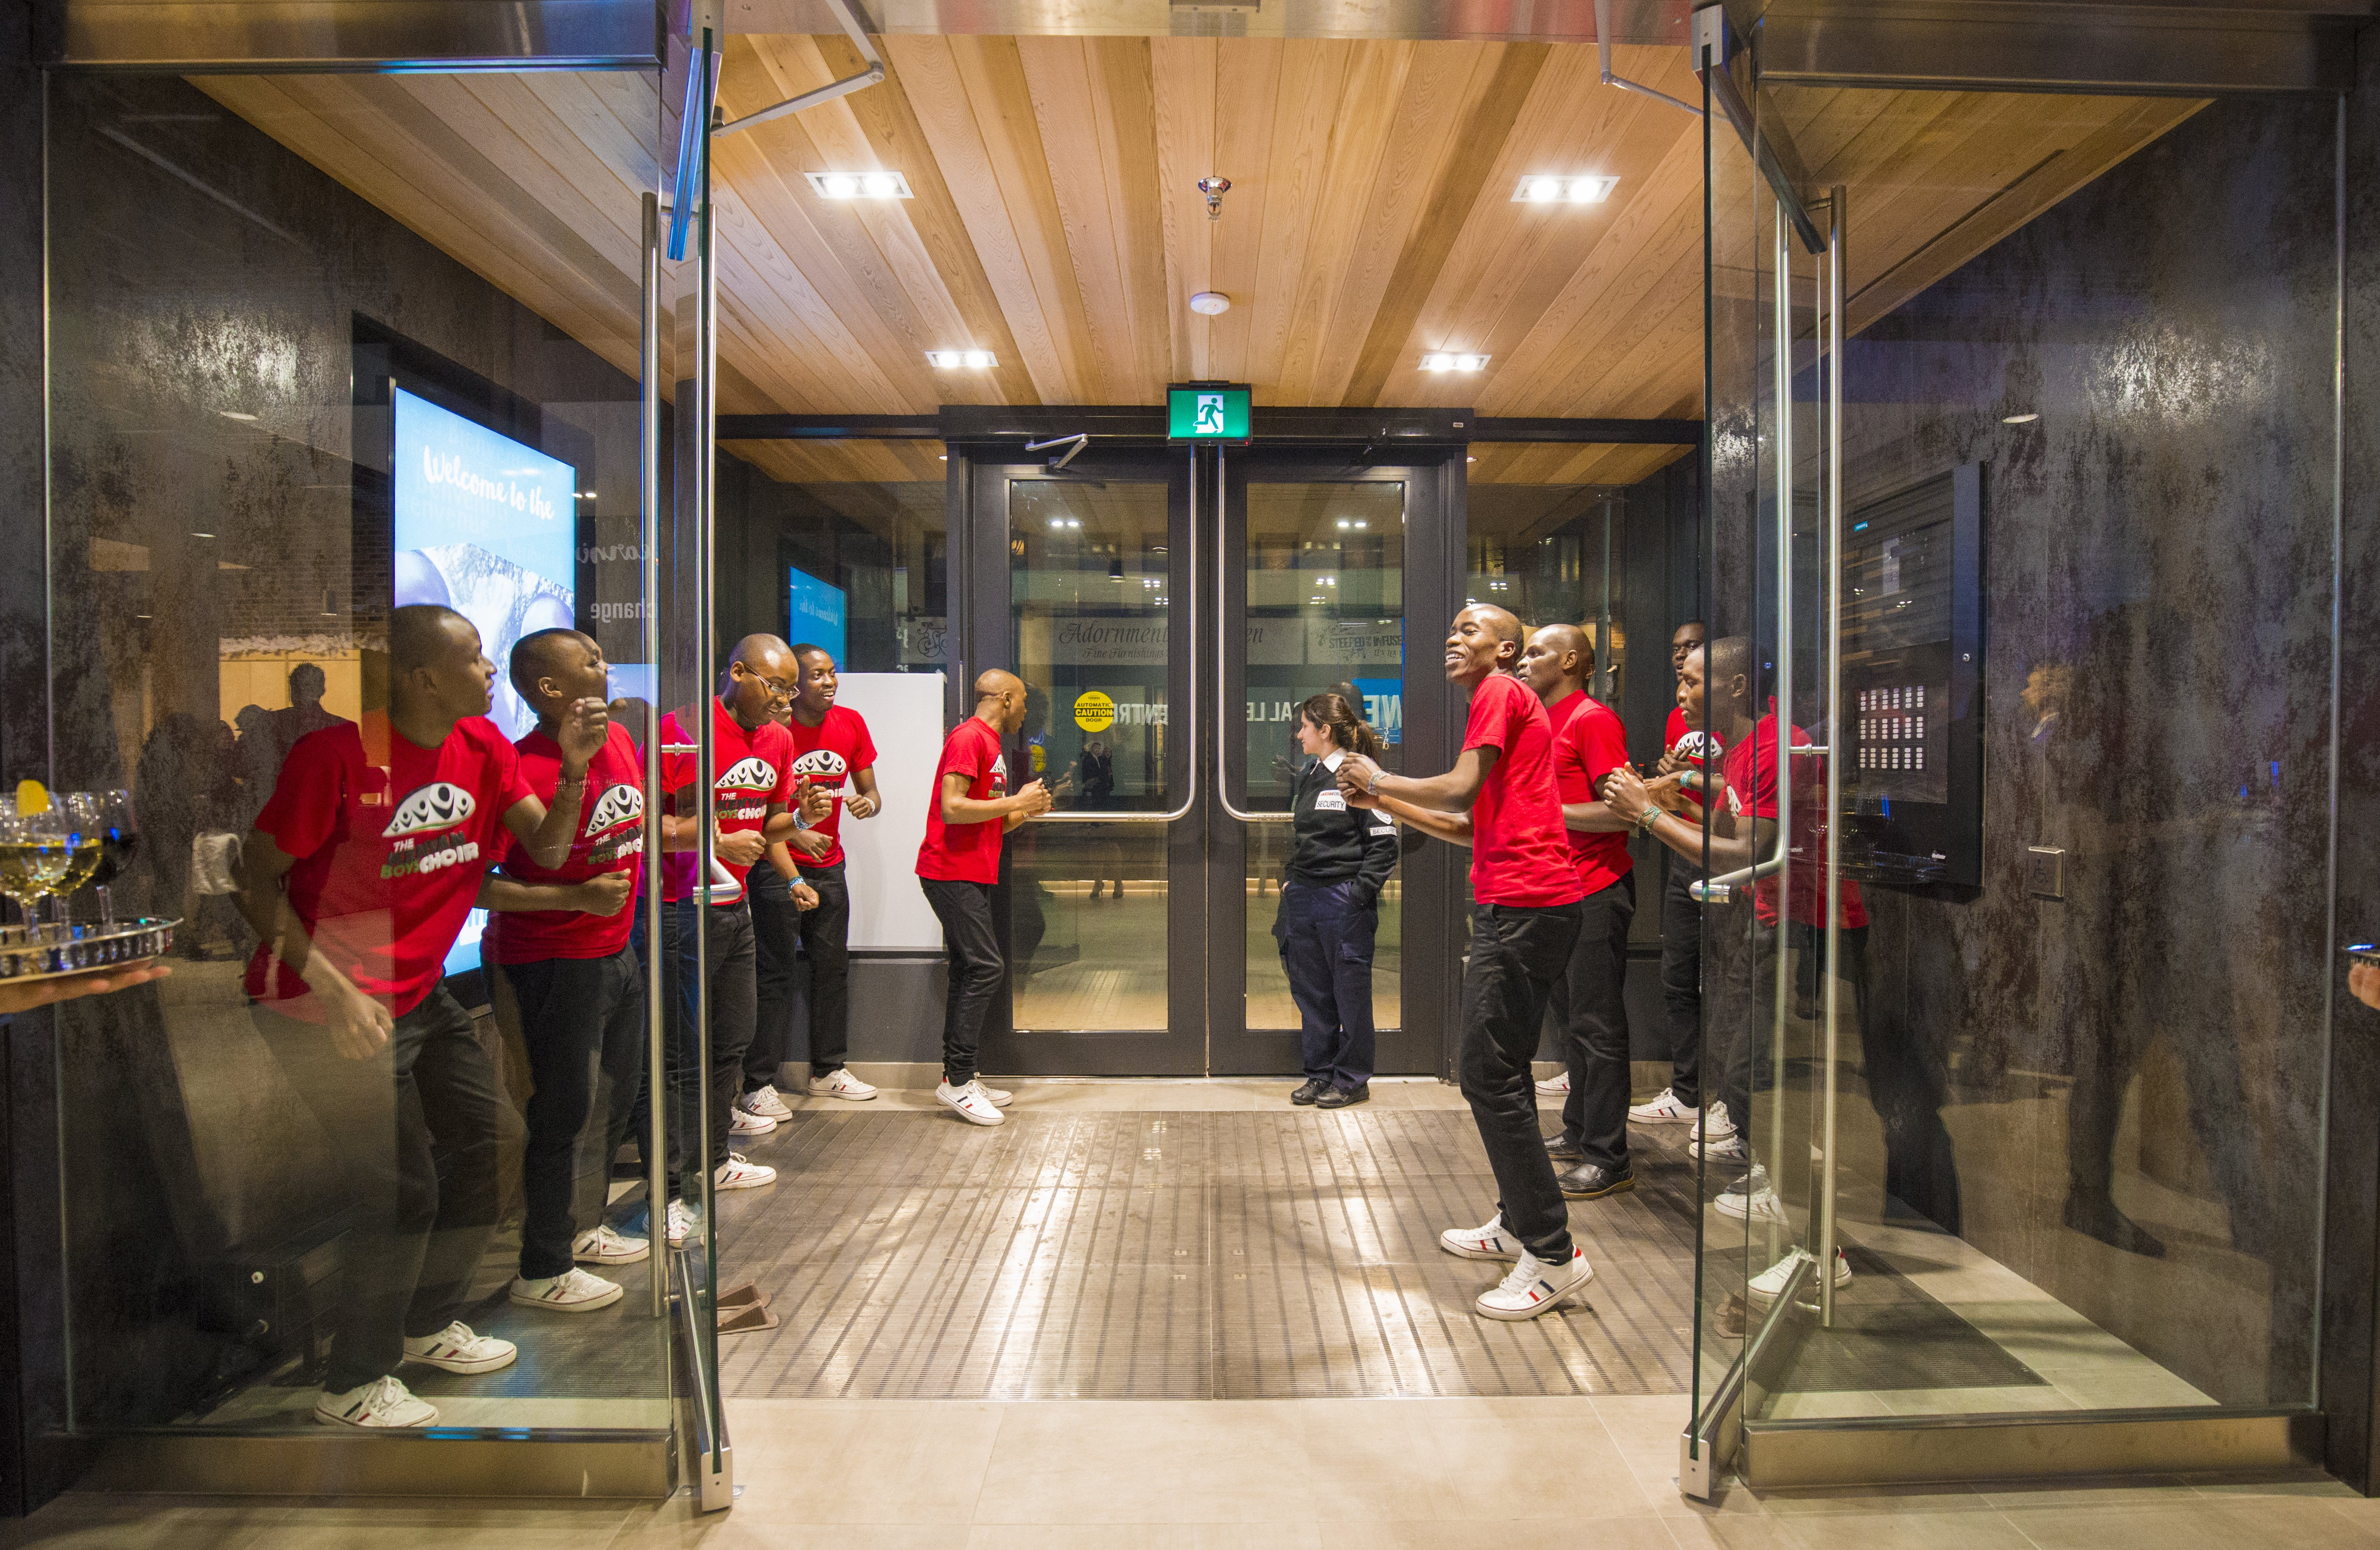 The Kenyan Boys Choir perform in the entrance to the WE Global Learning Center